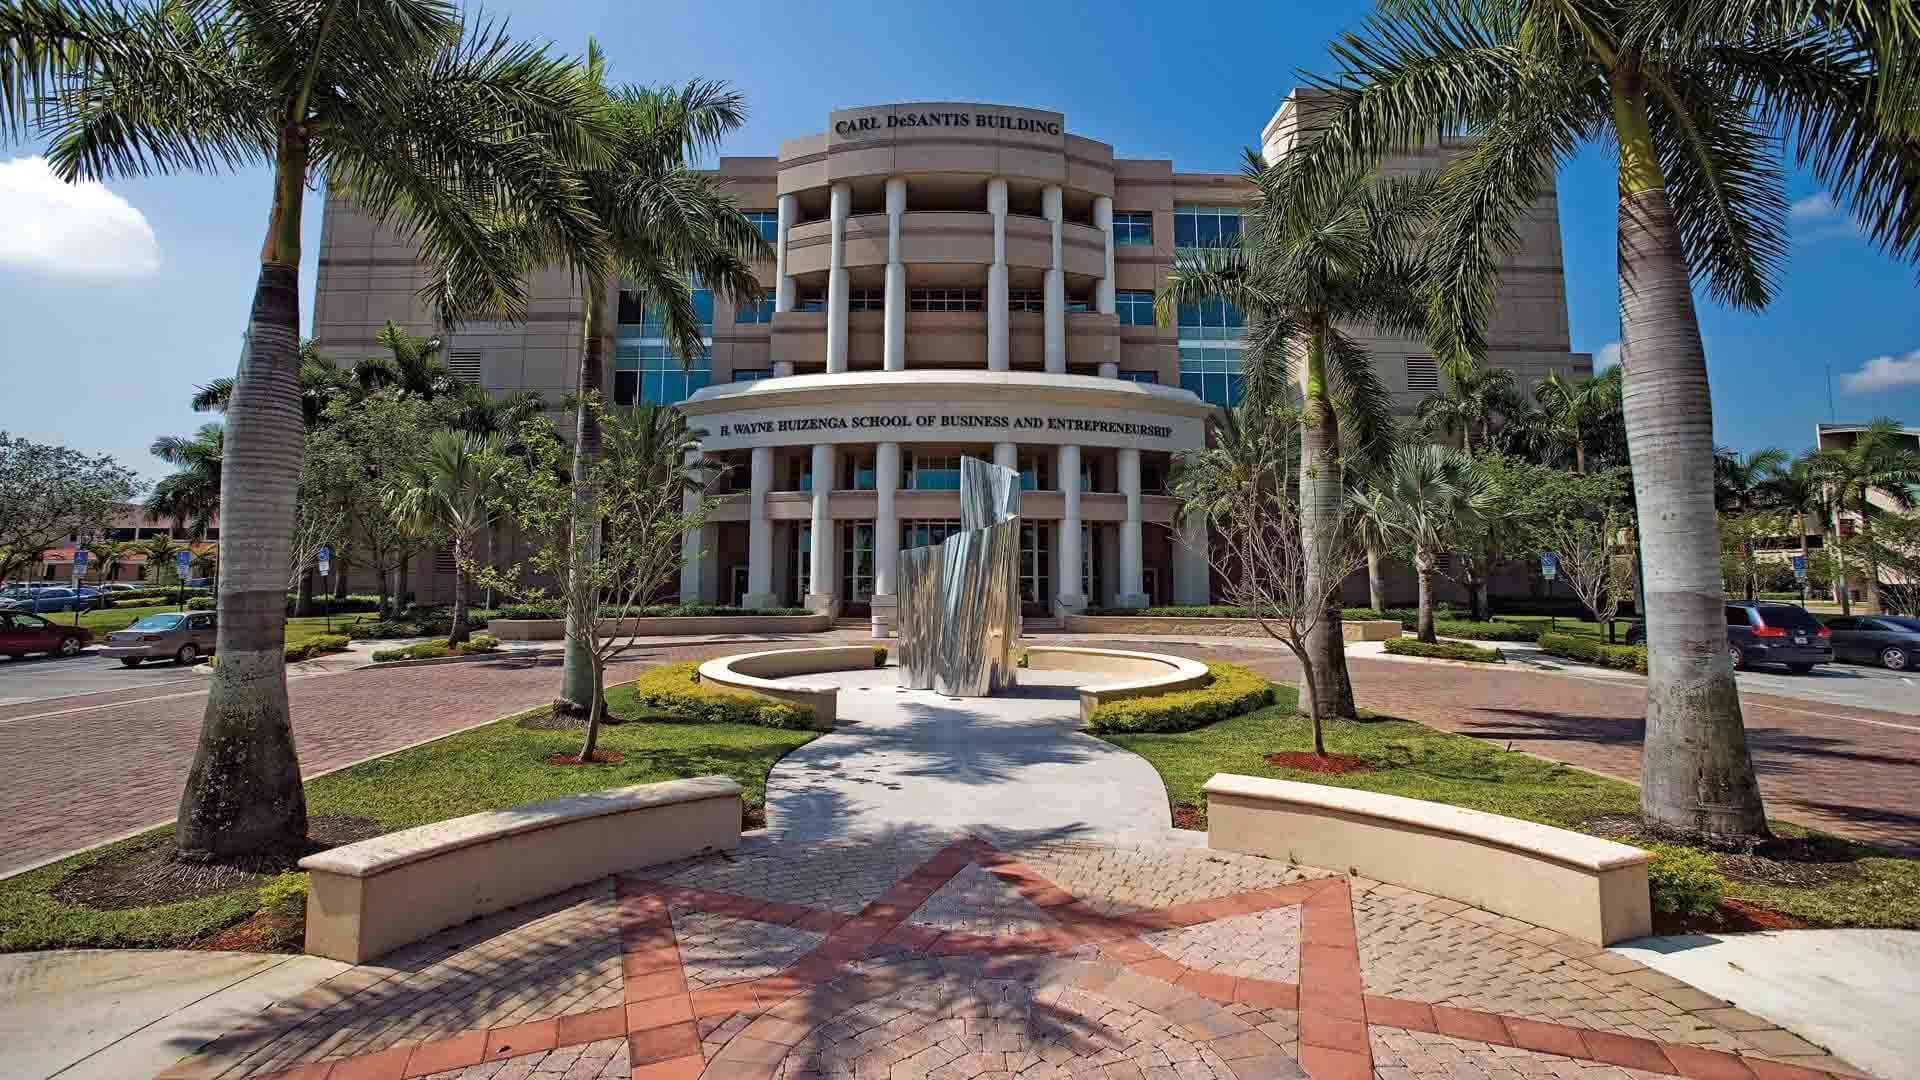 Nova southeastern university master of science in leadership